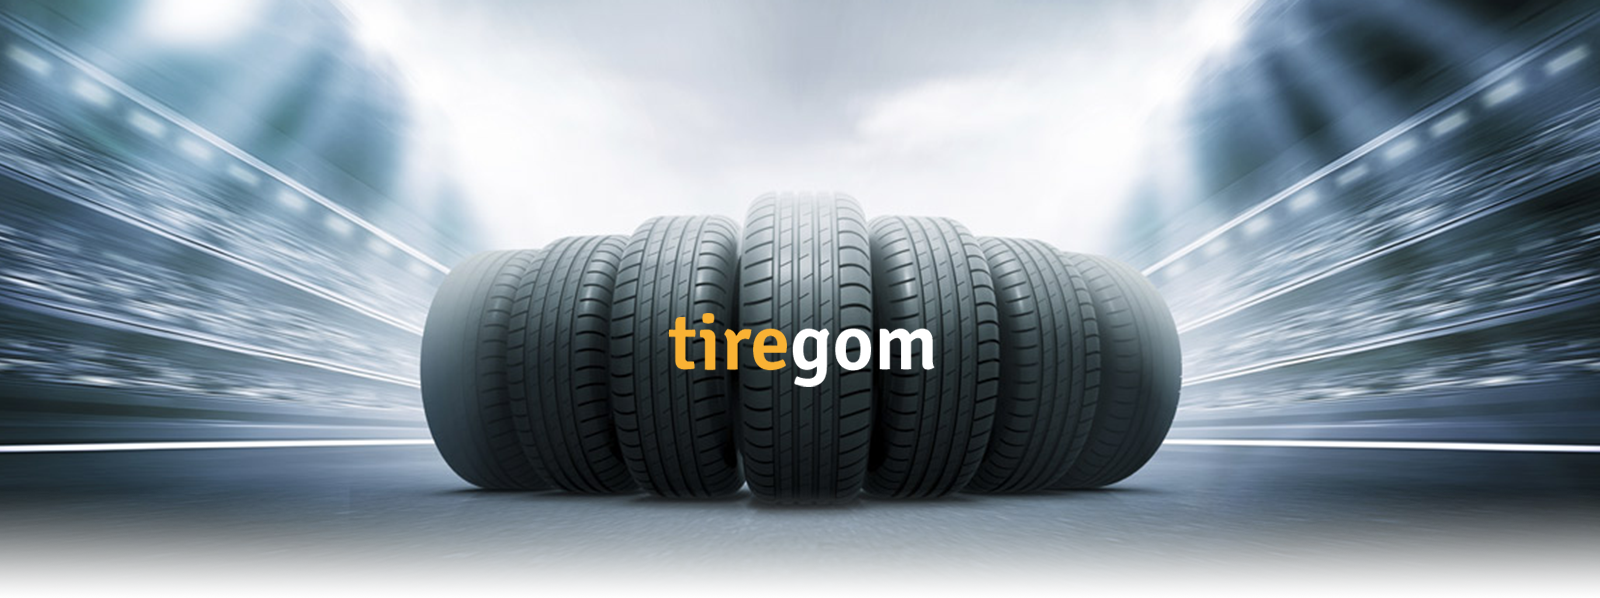 Tiregom.ca : comparateur de pneus